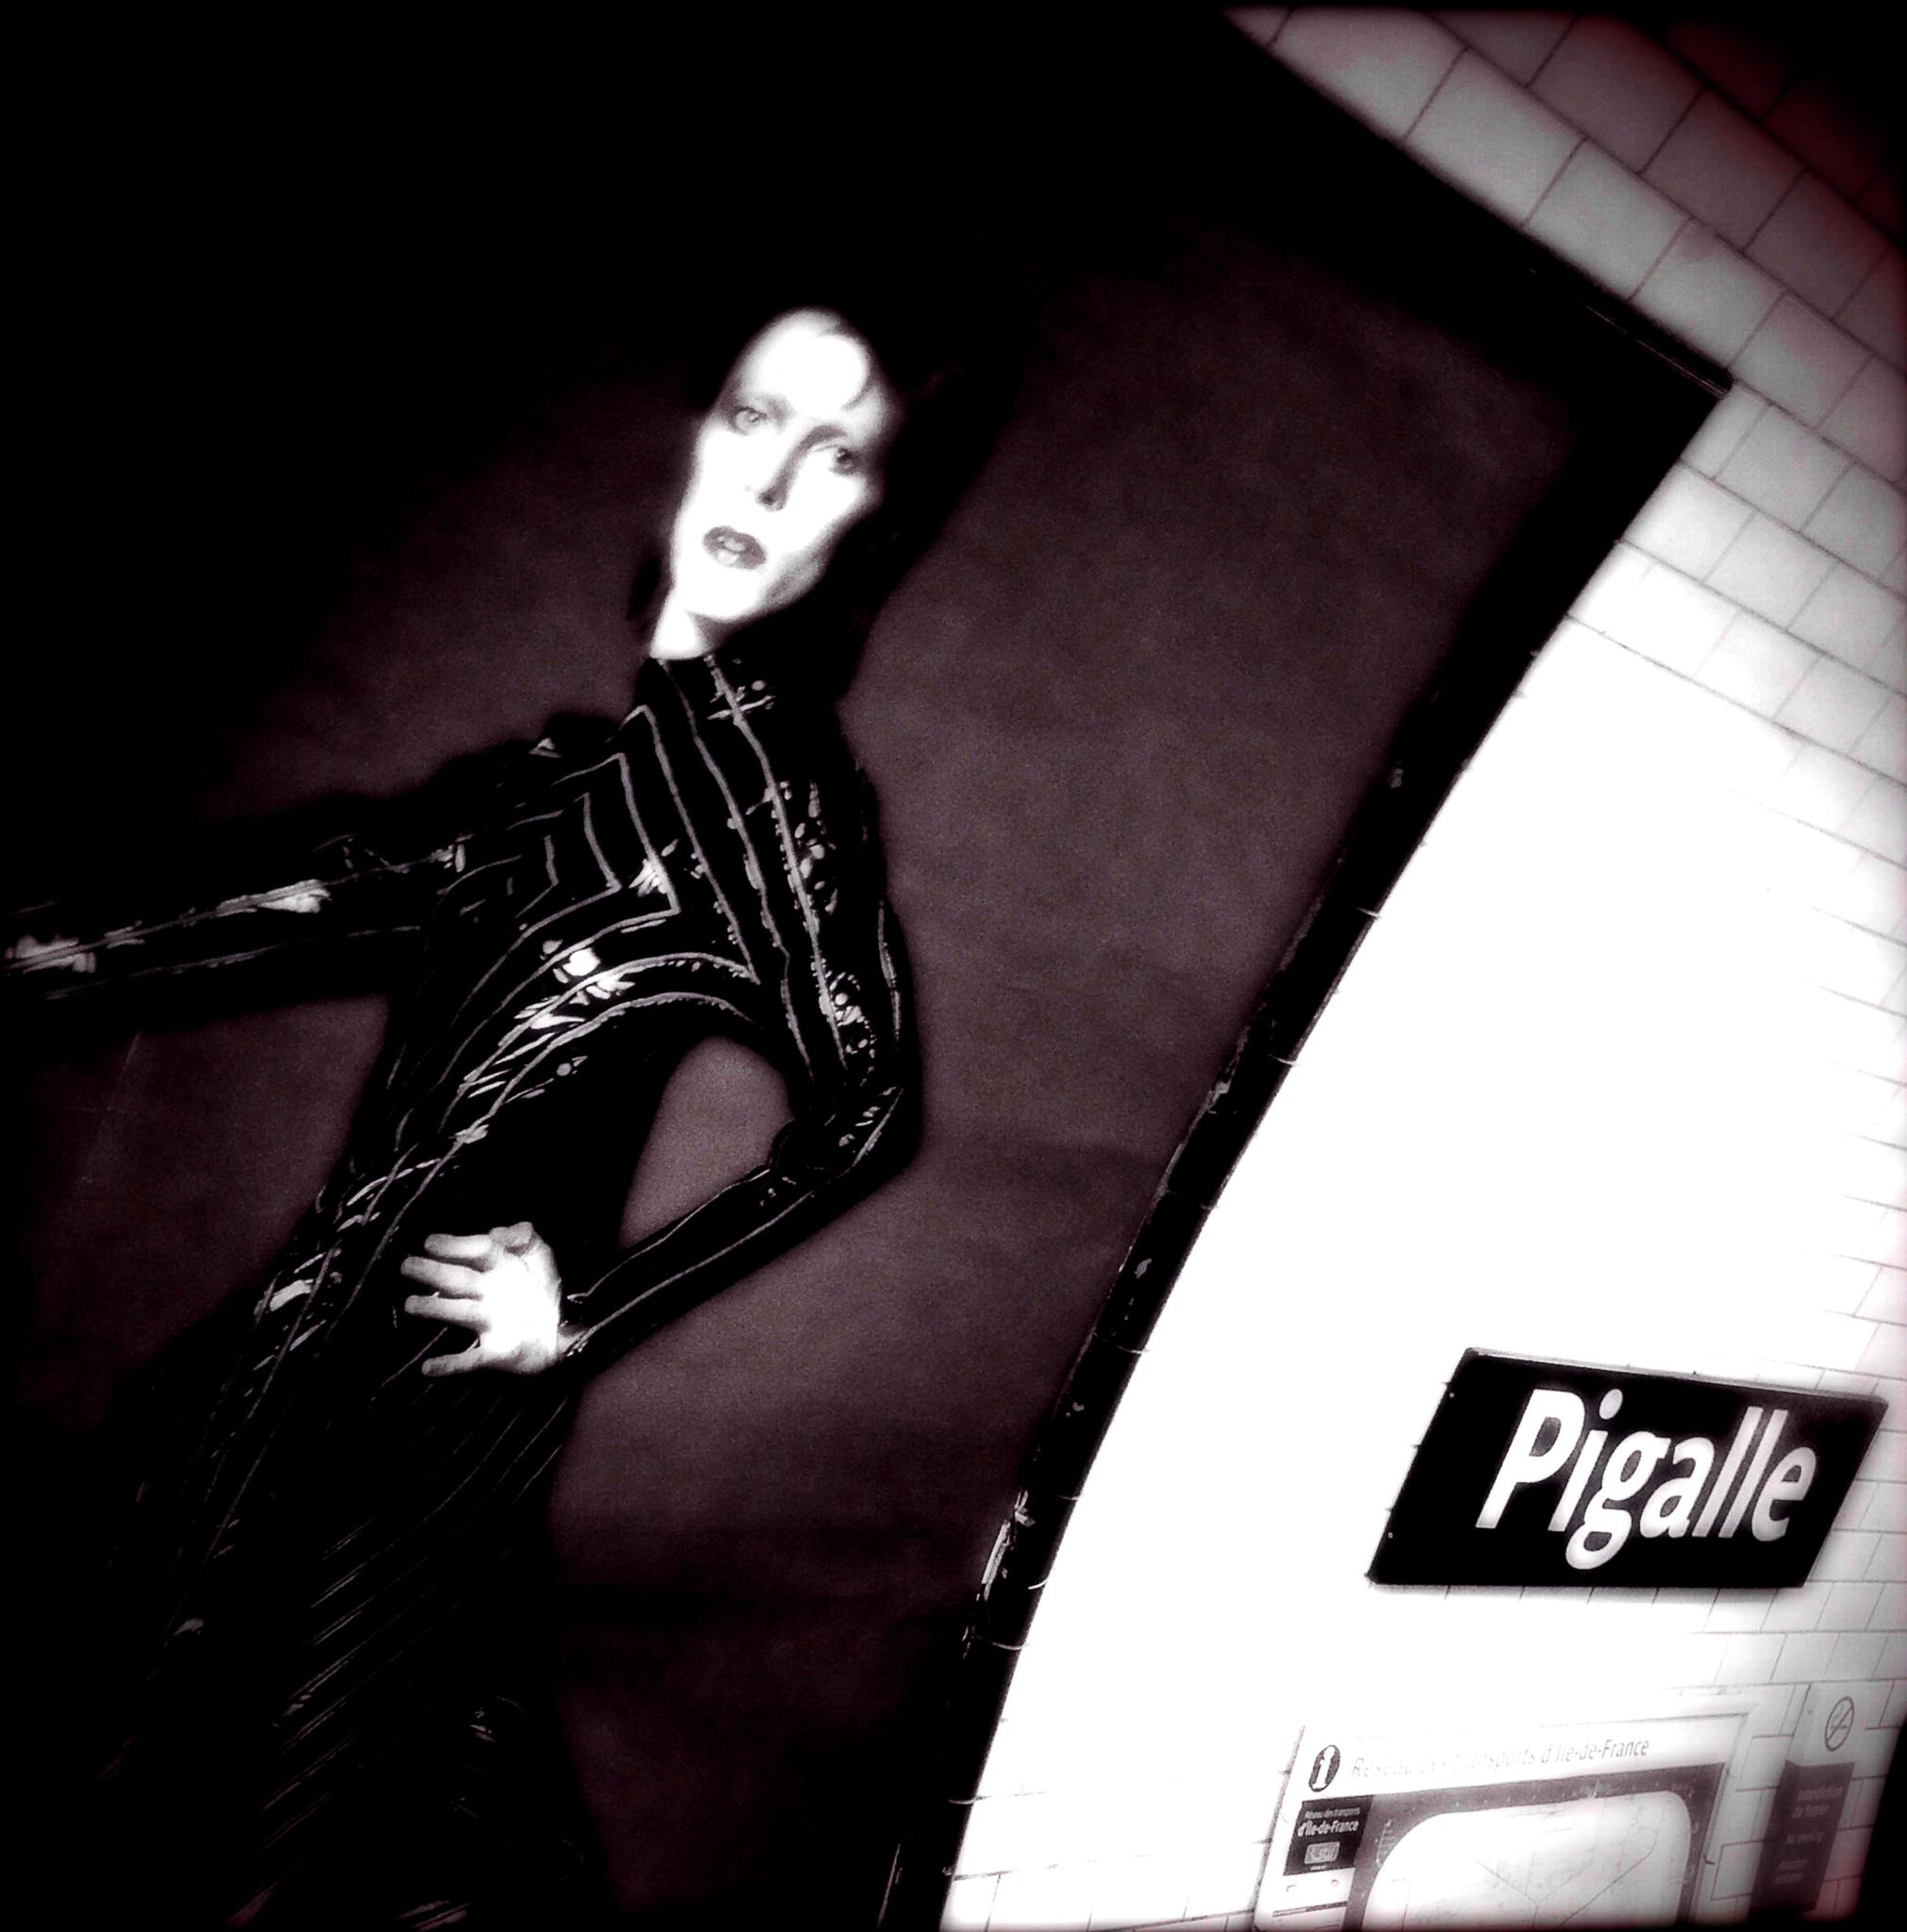 Pigalle - Bowie exposition by FUMIGRAPHIK